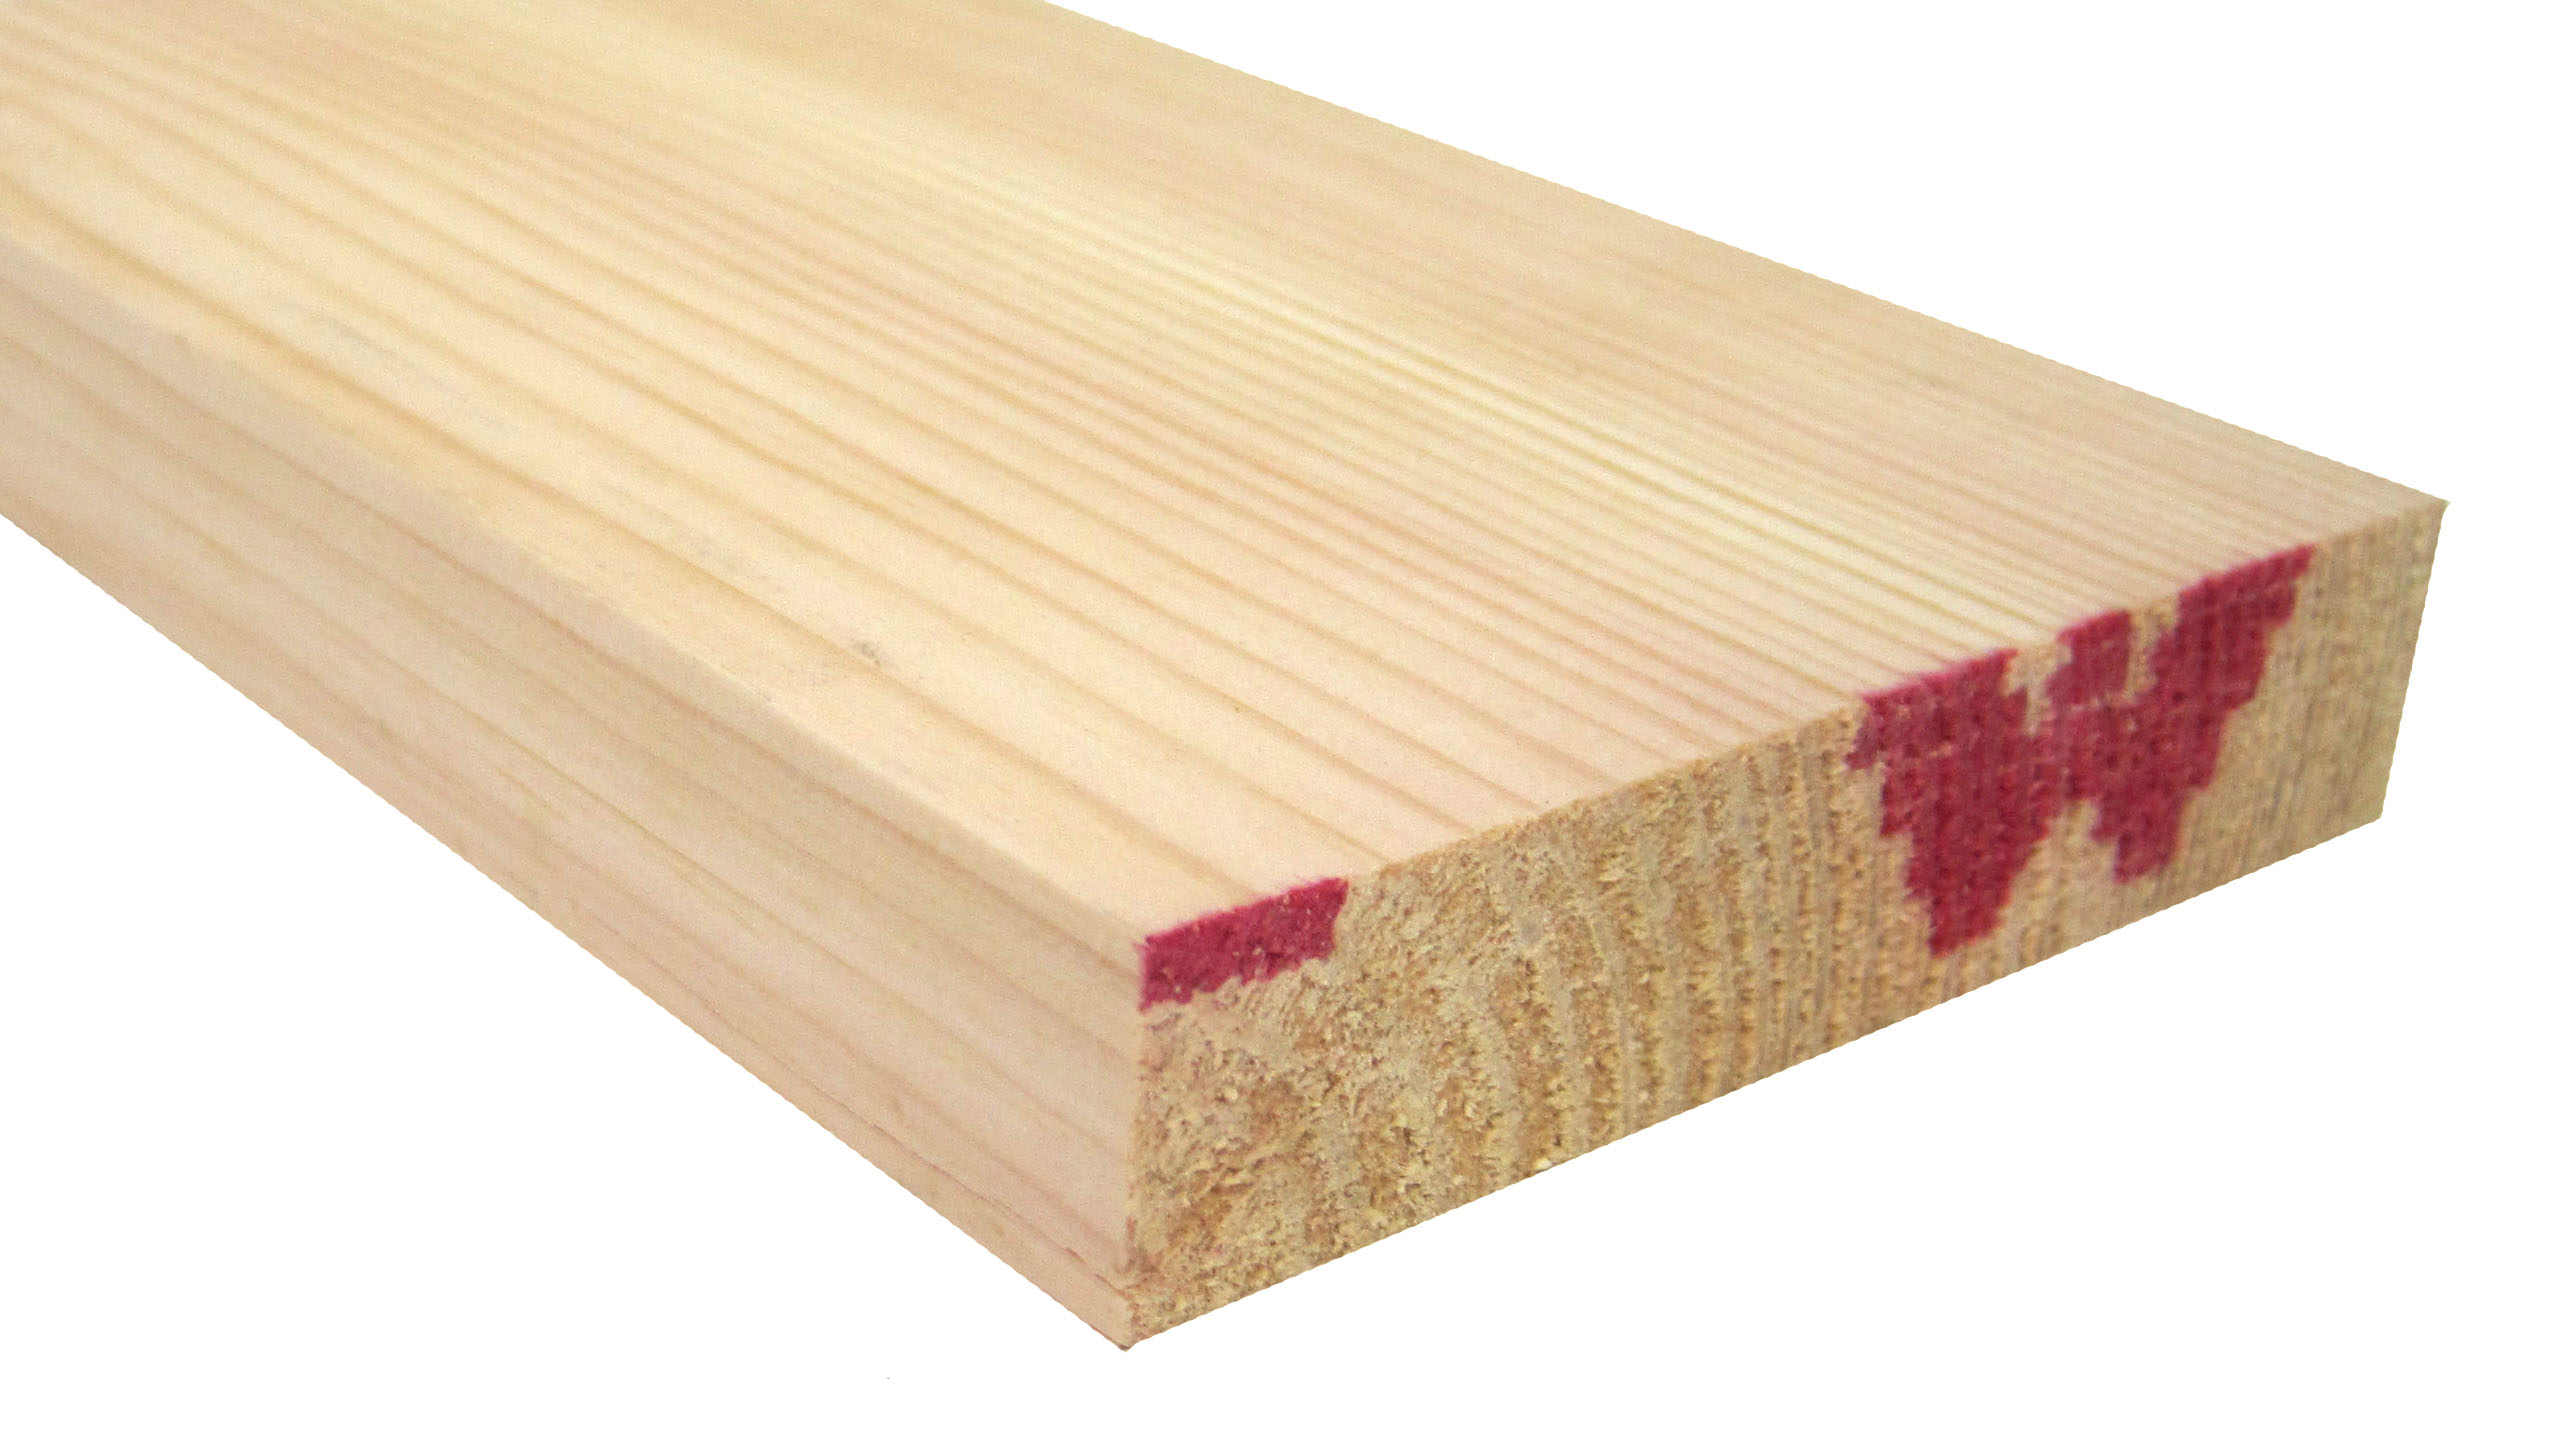 Sustainability and softwood woodguide